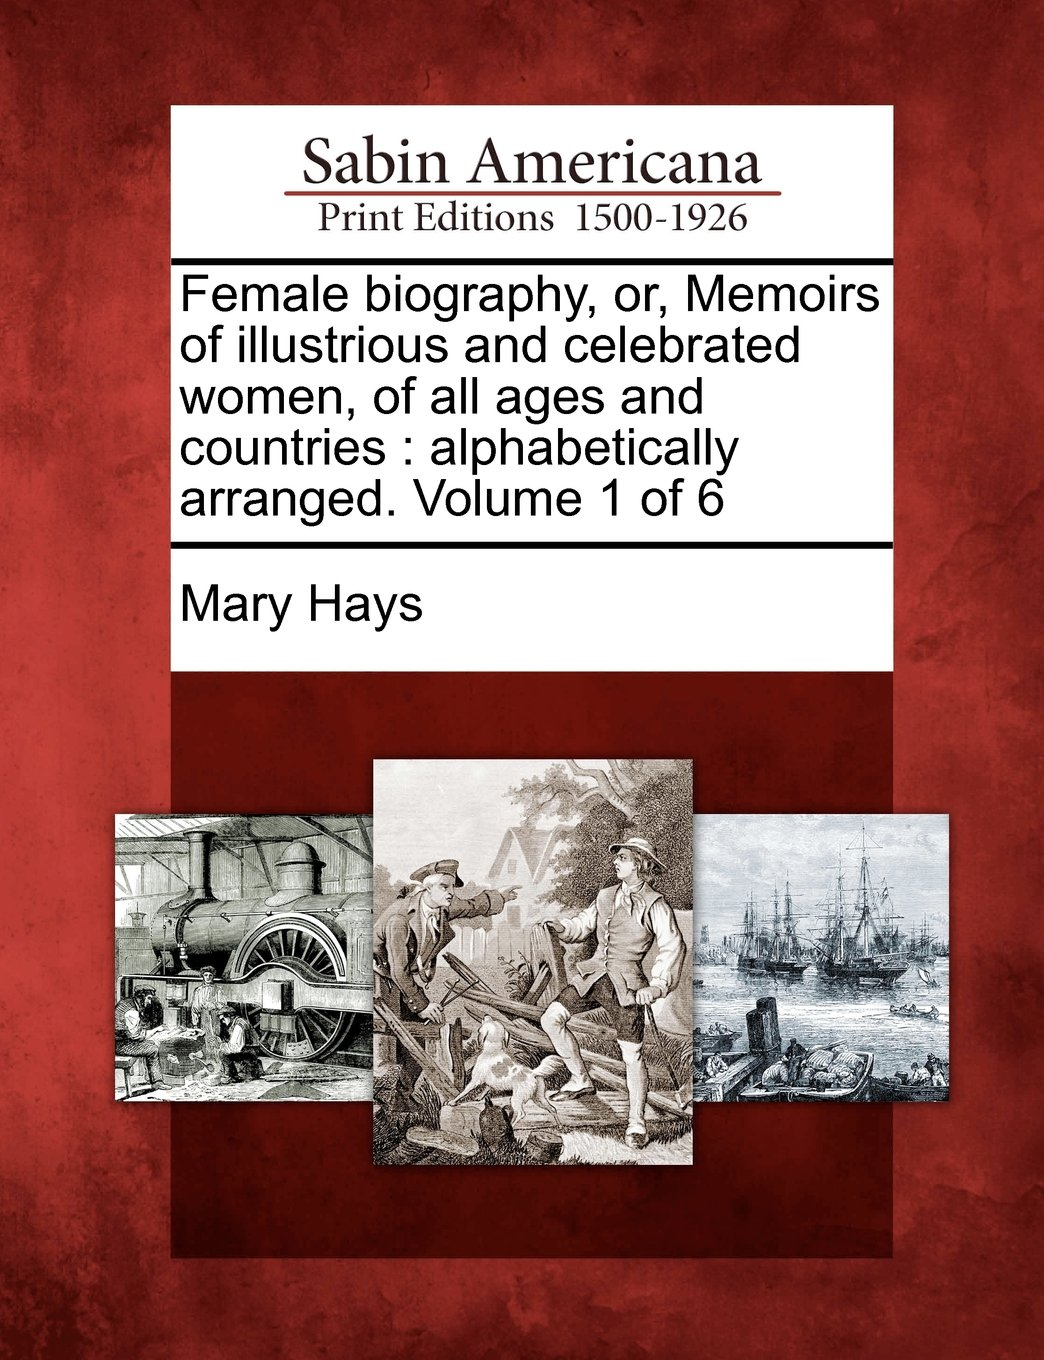 Female biography, or, Memoirs of illustrious and celebrated women, of all ages and countries: alphabetically arranged. Volume 1 of 6 pdf epub